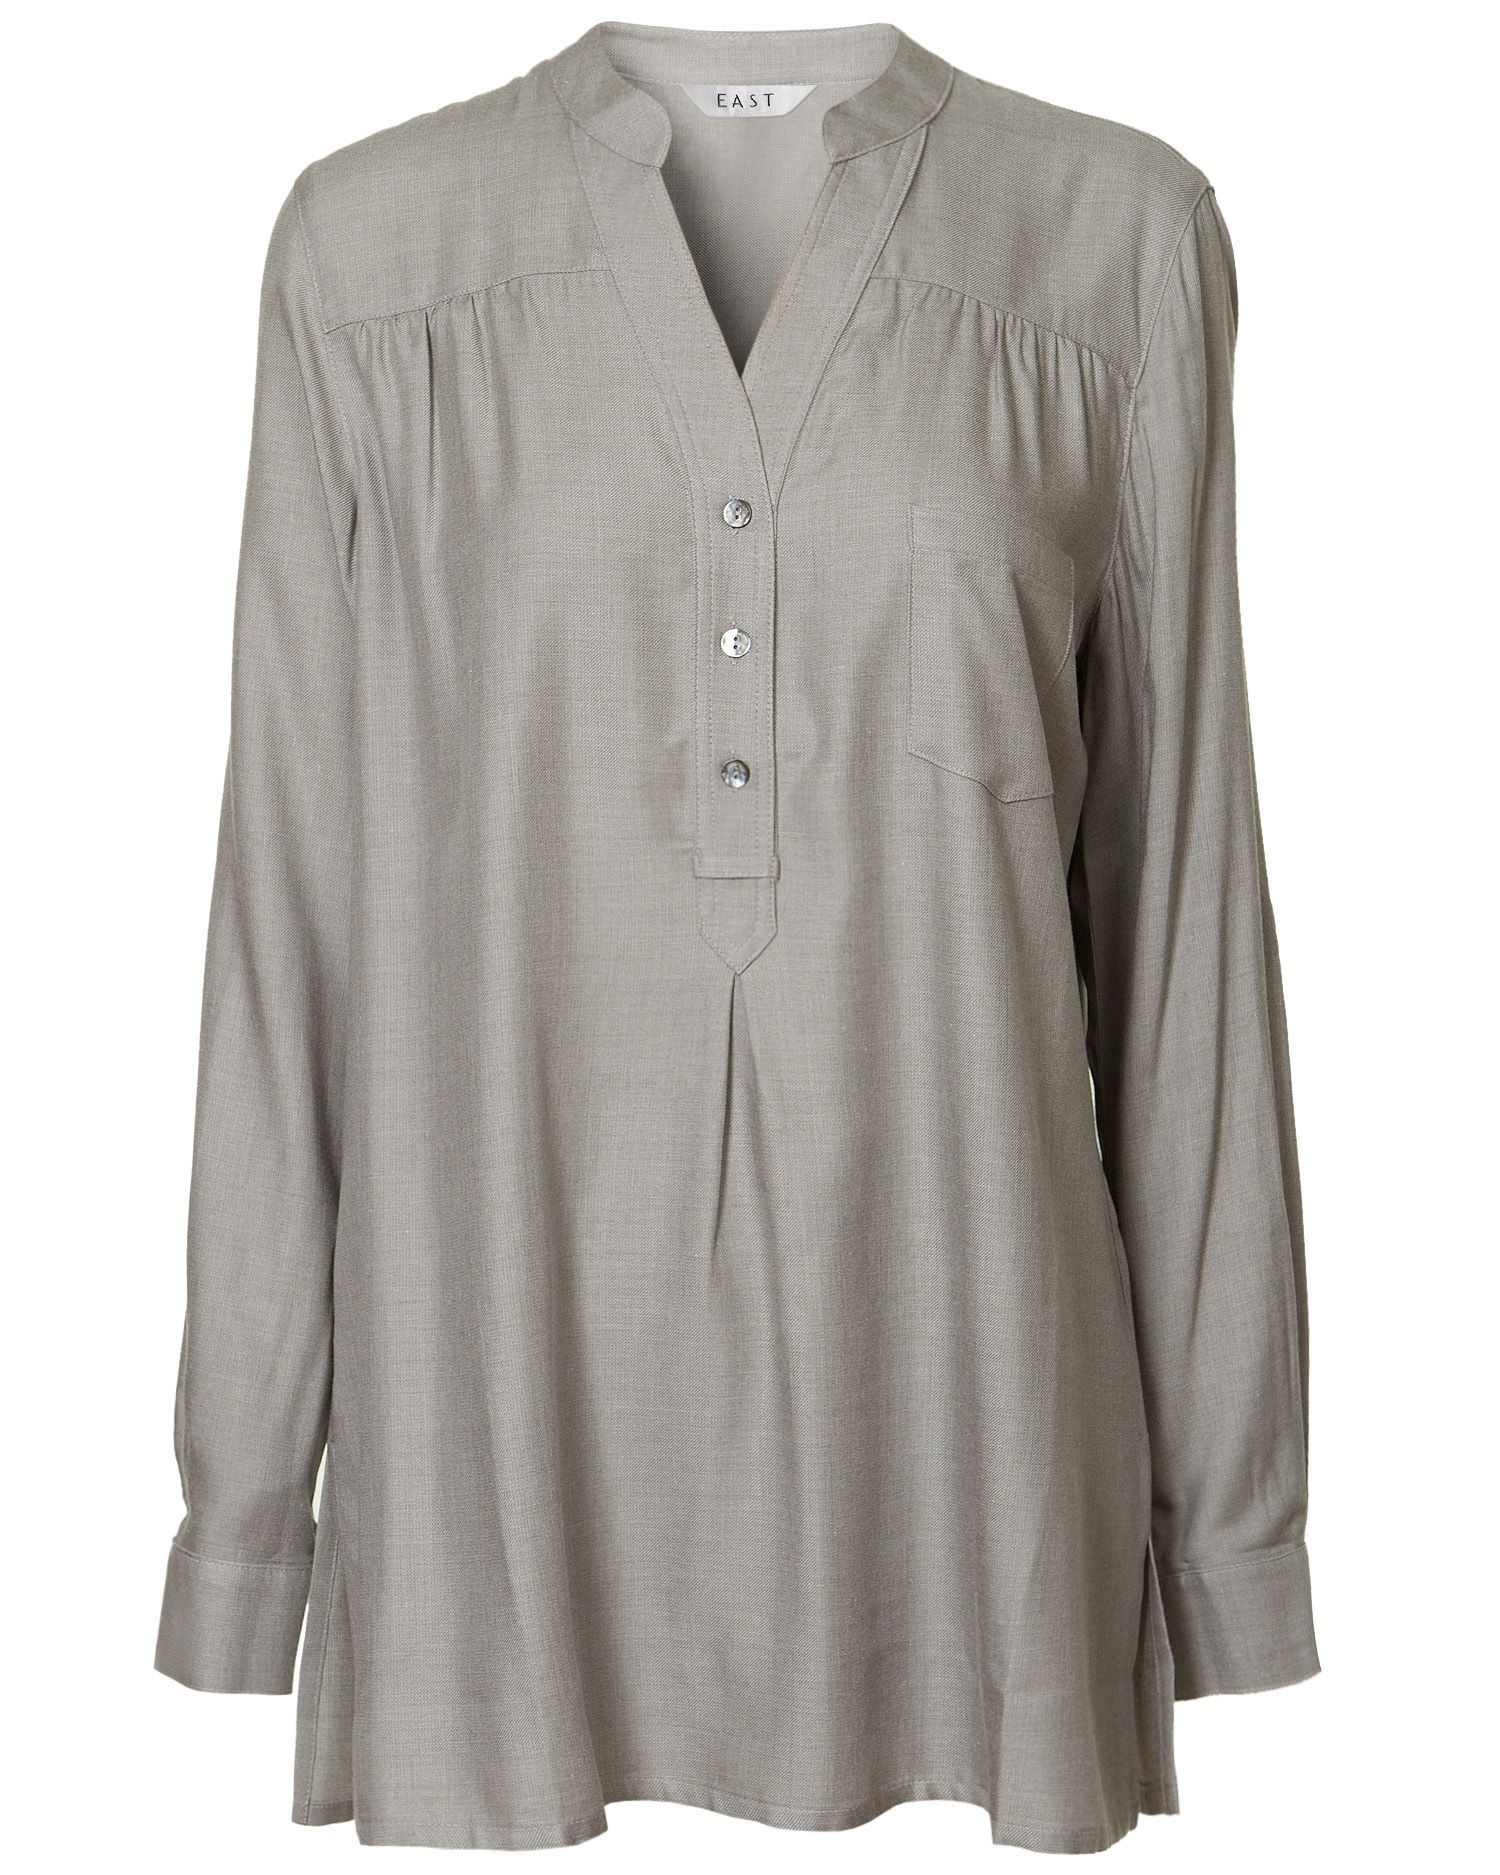 East Womens East Dakota winter blouse, Grey product image